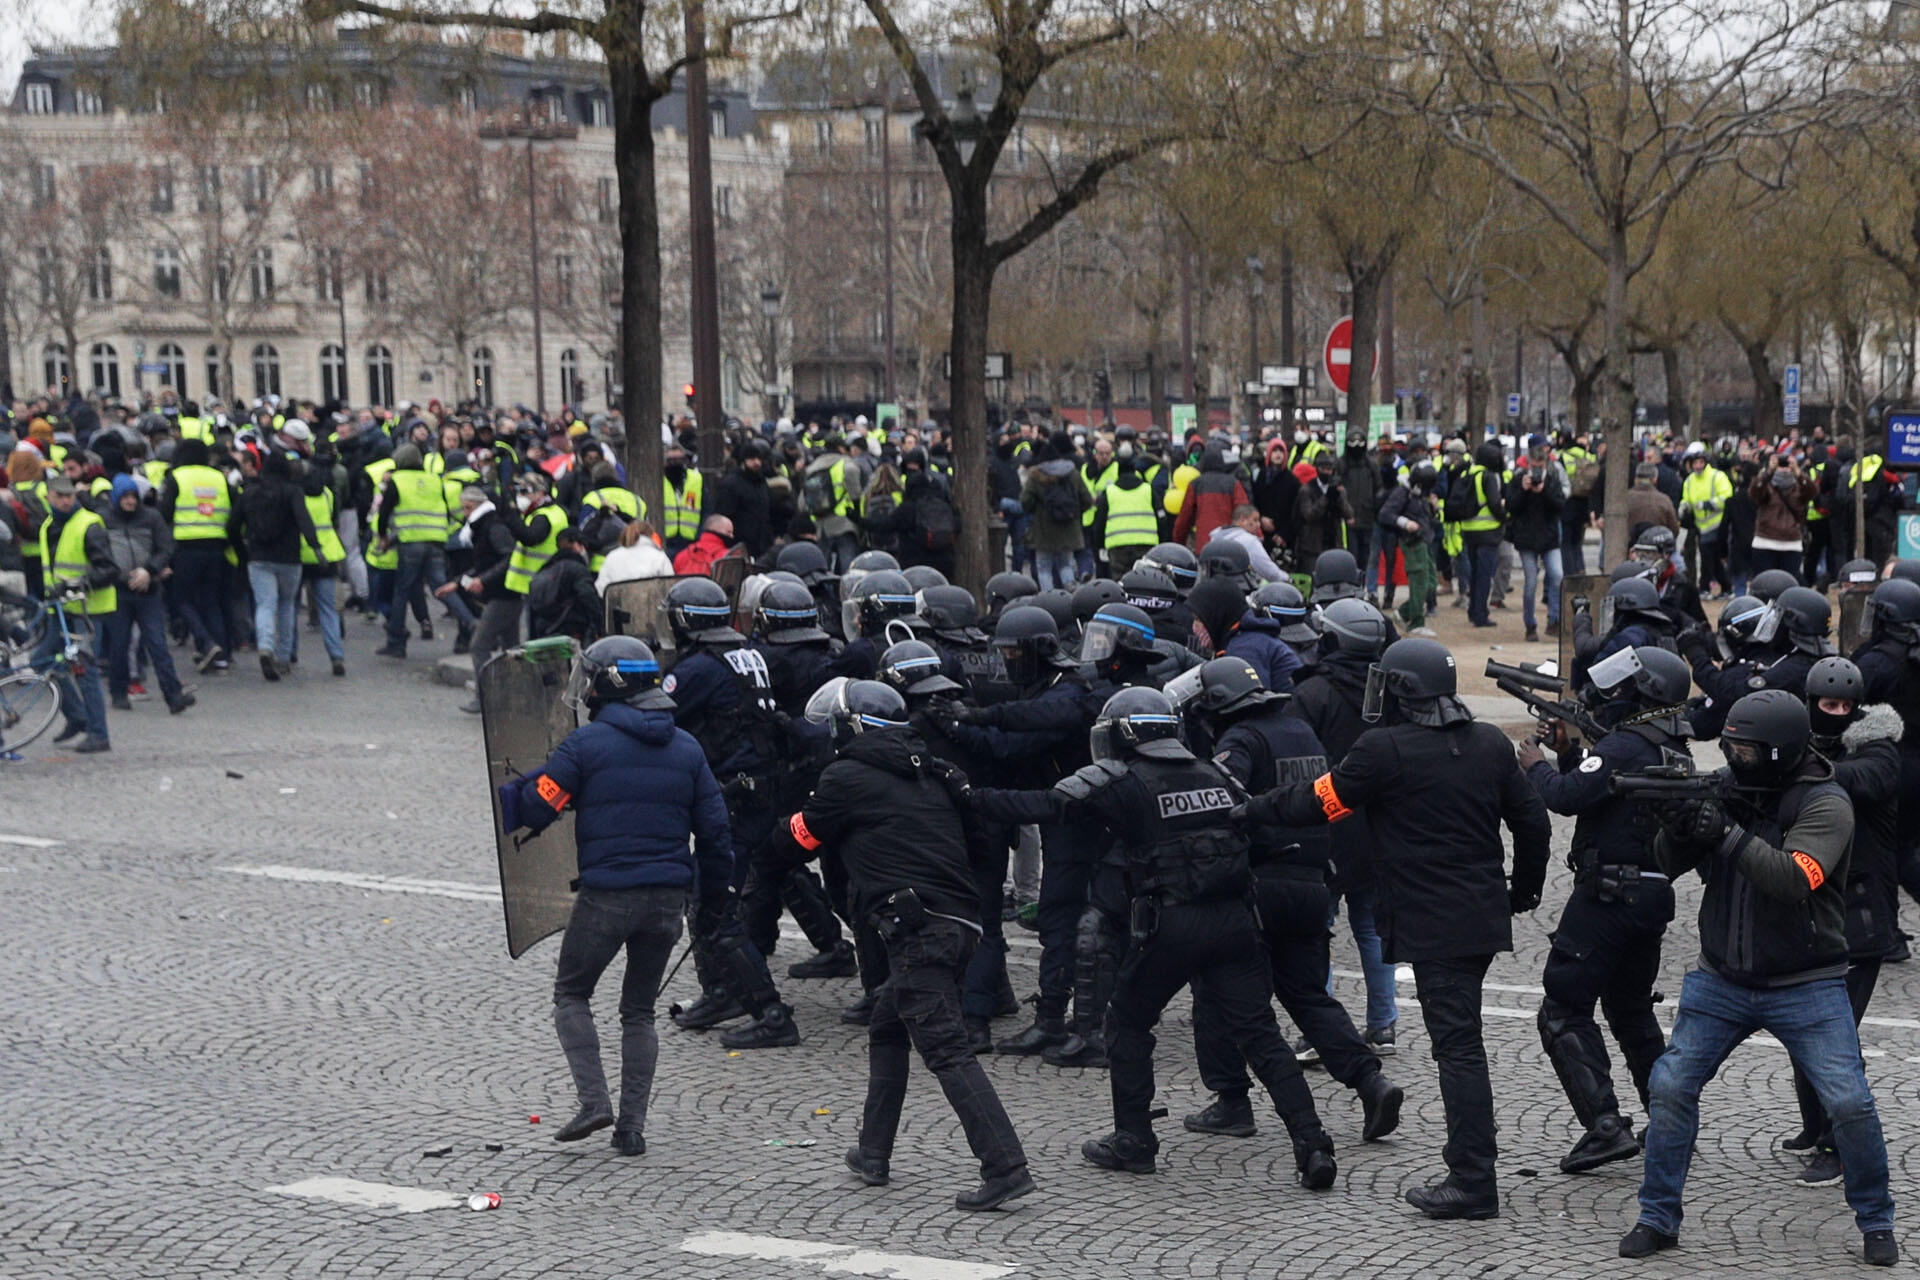 Clashes between Yellow Vest protesters and police near Paris's Champs-Elysées avenue, 12 January, 2019